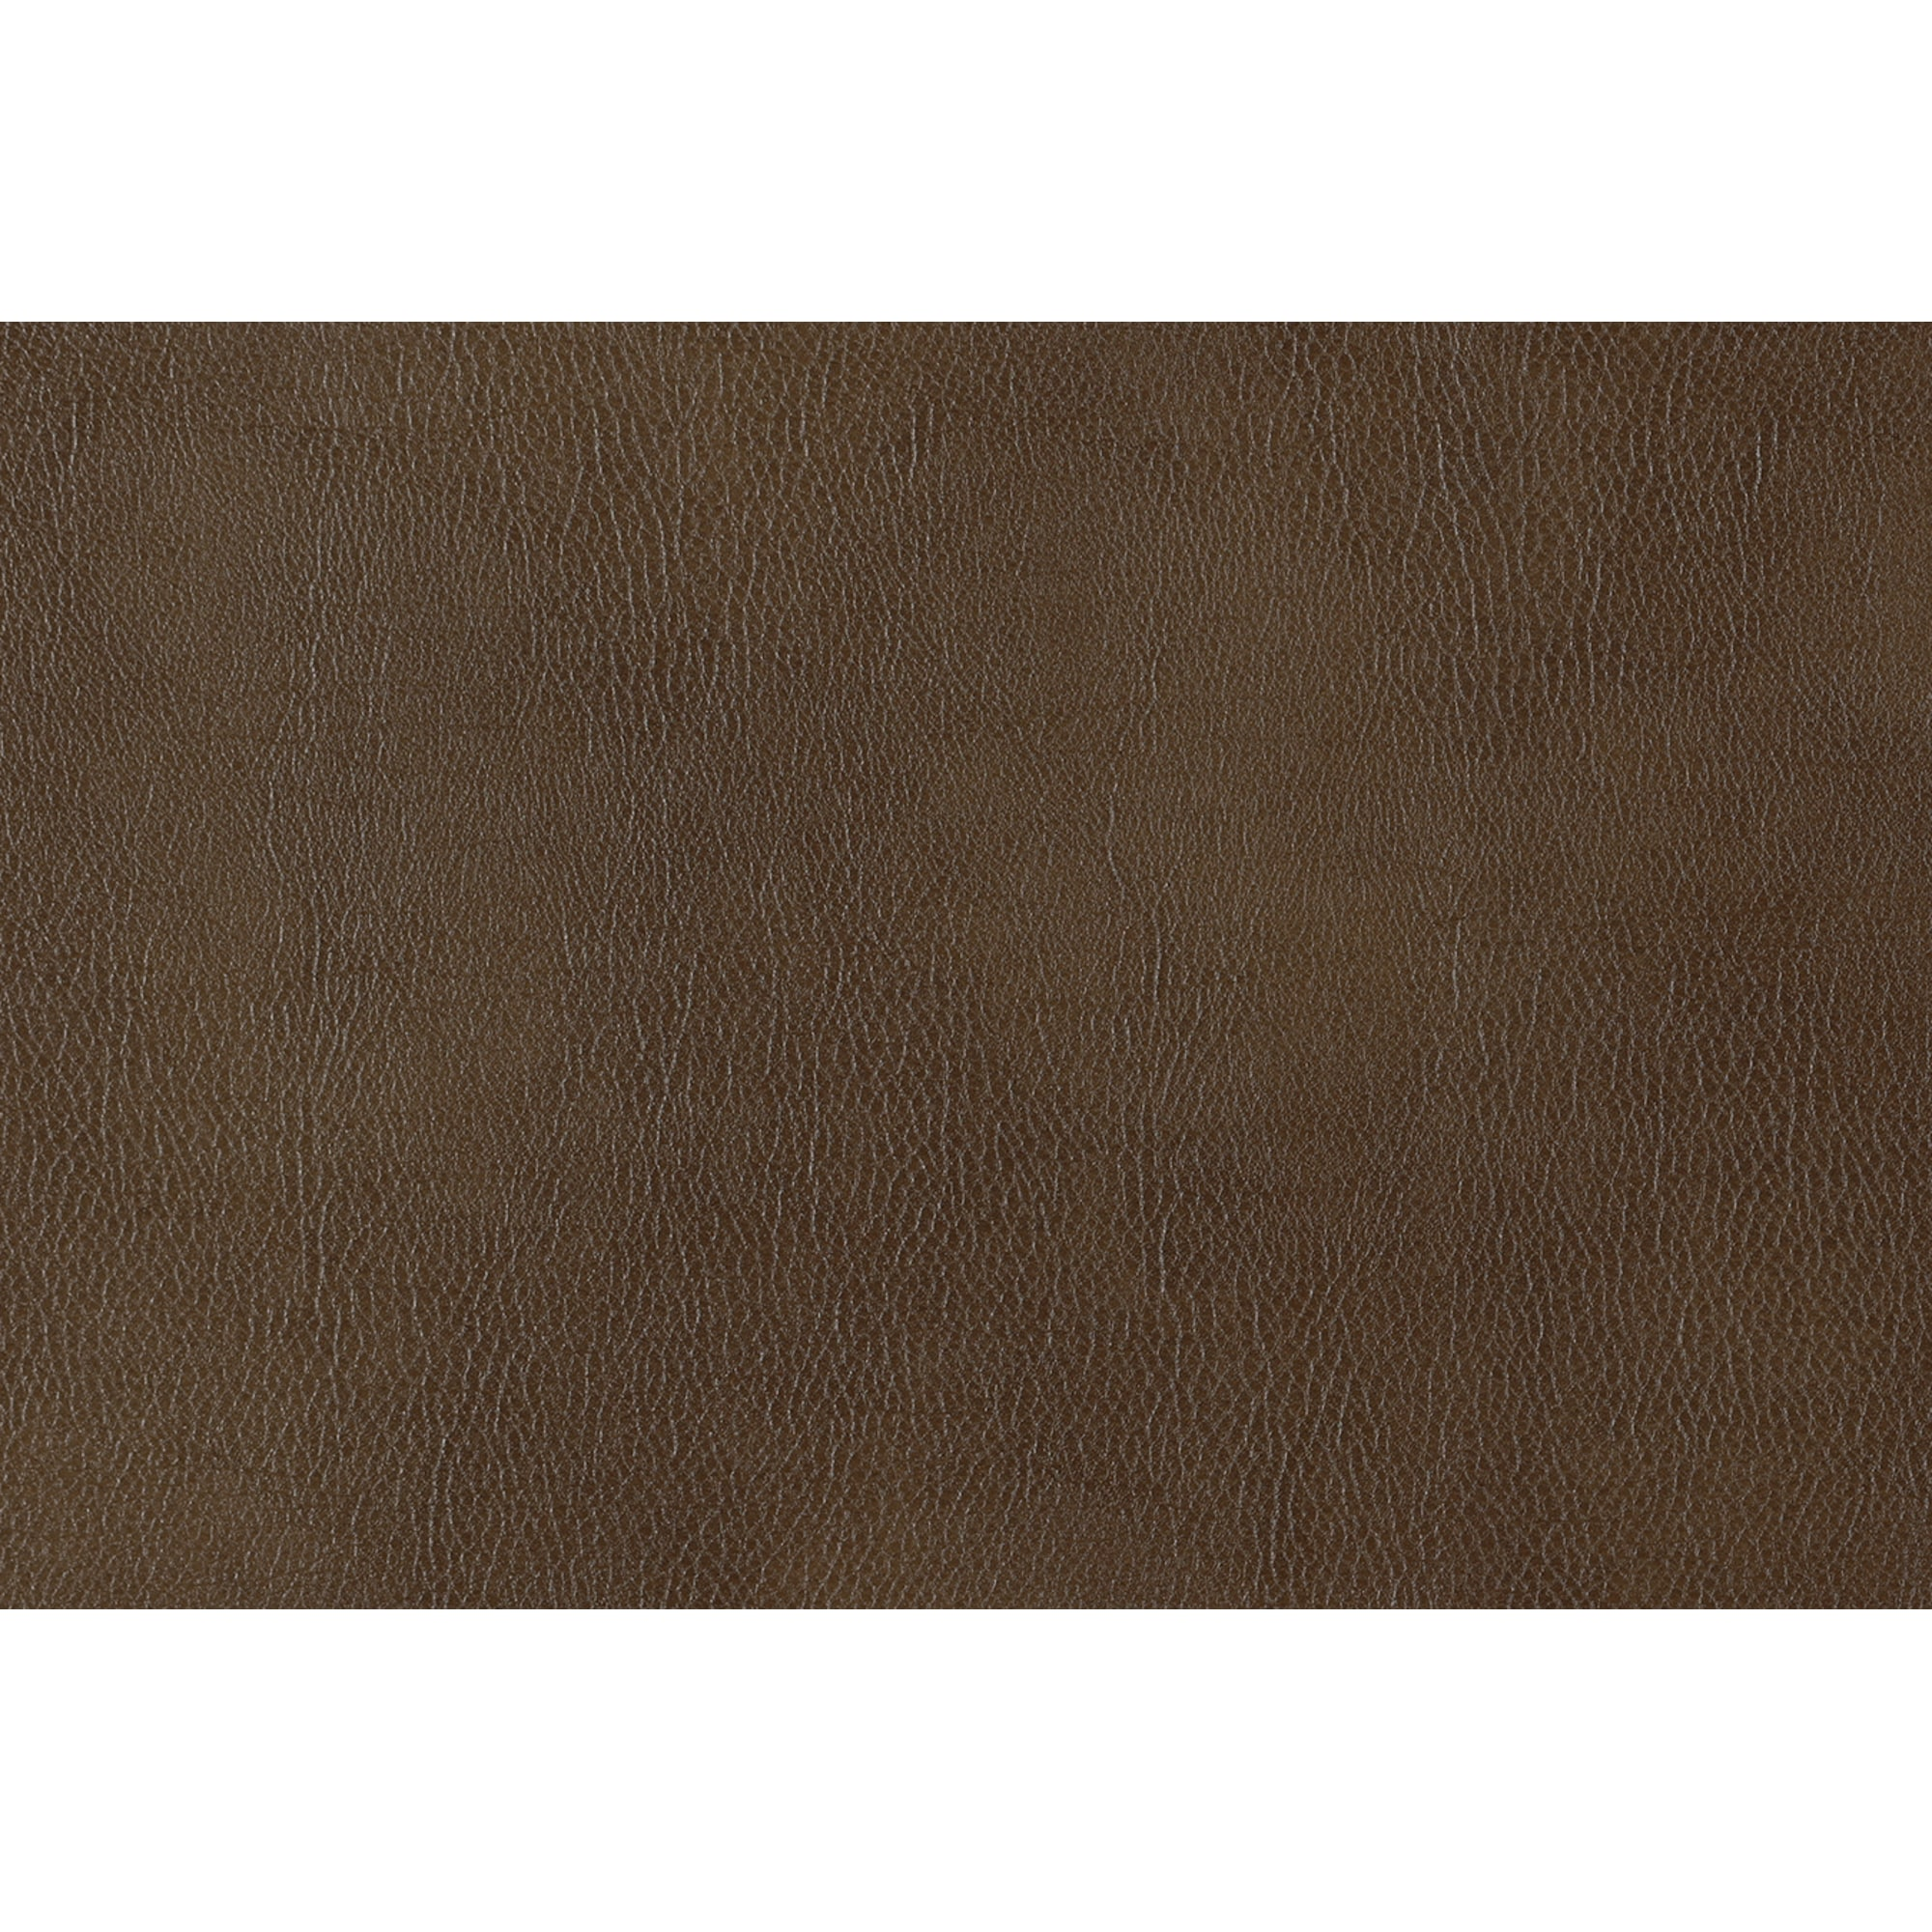 Image for 8009-073 ROMAN CHESTNUT from Hekman Official Website